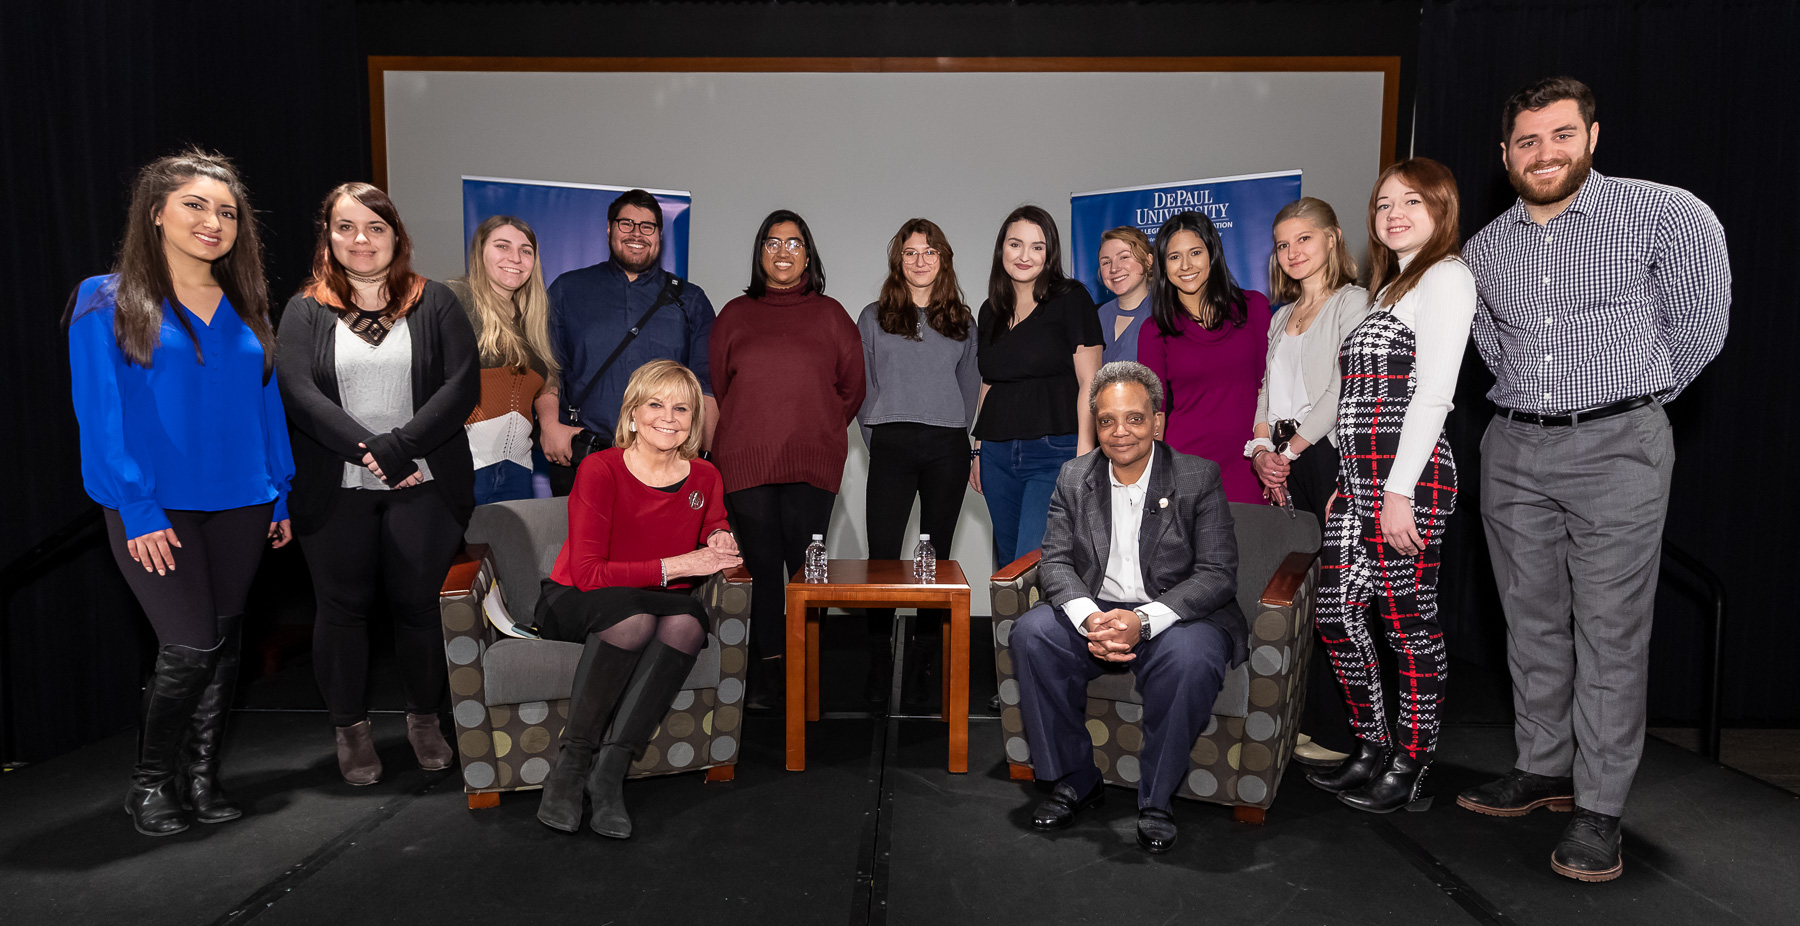 DePaul University students in Advanced Reporting pose for a photo with their instructor Carol Marin (seated left) and Chicago Mayor Lori Lightfoot. (DePaul University/Jeff Carrion)